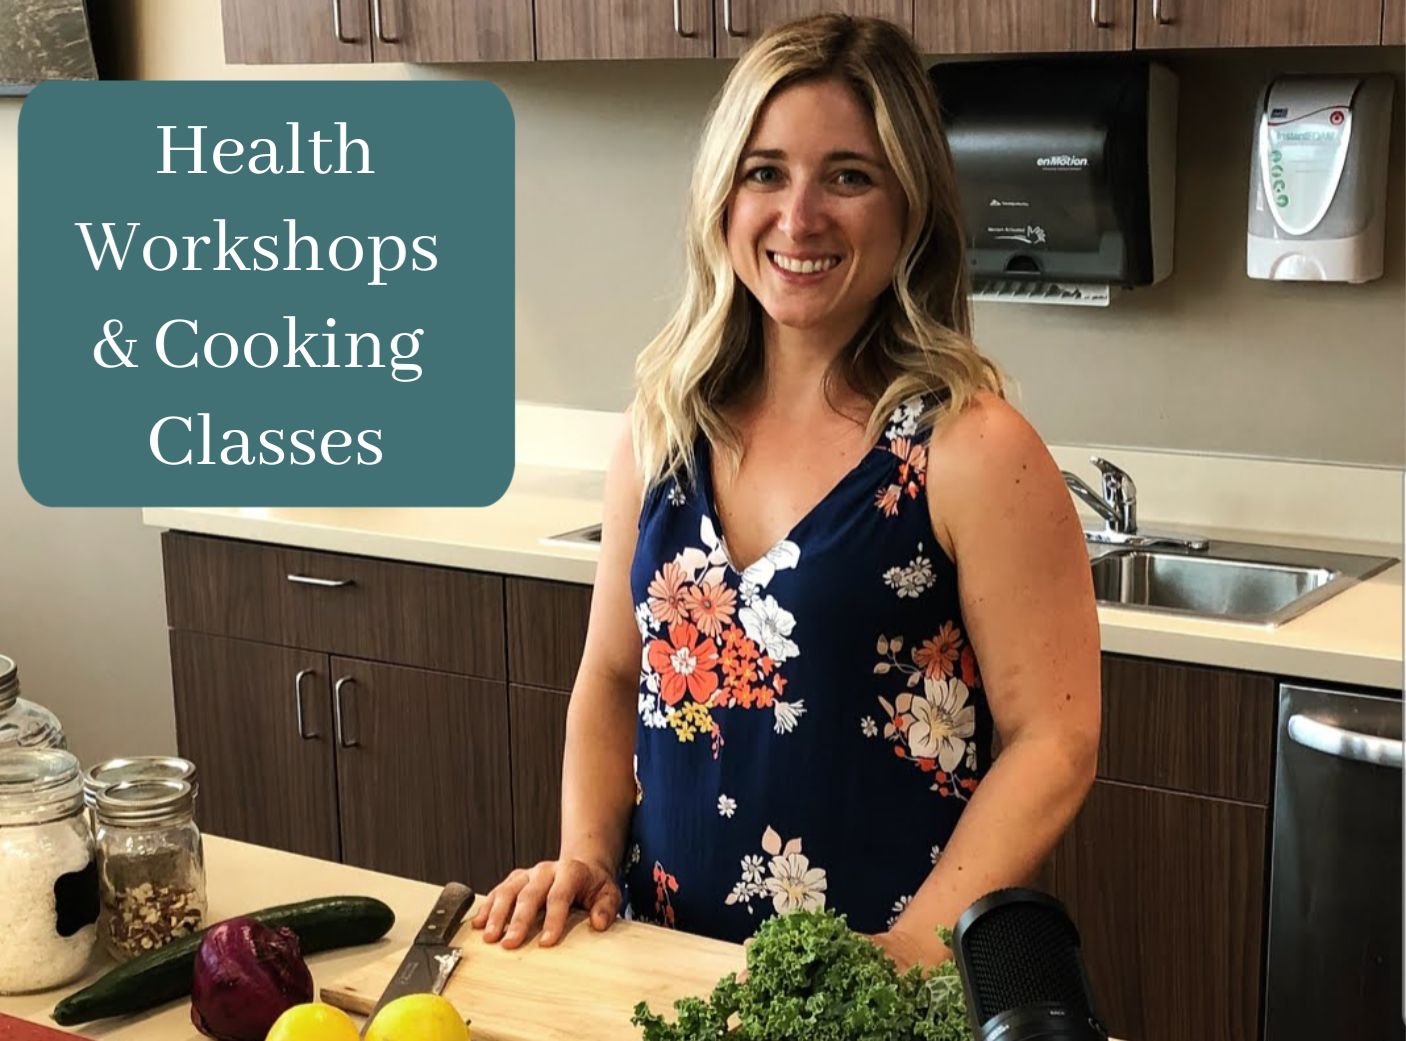 health workshops and cooking classes